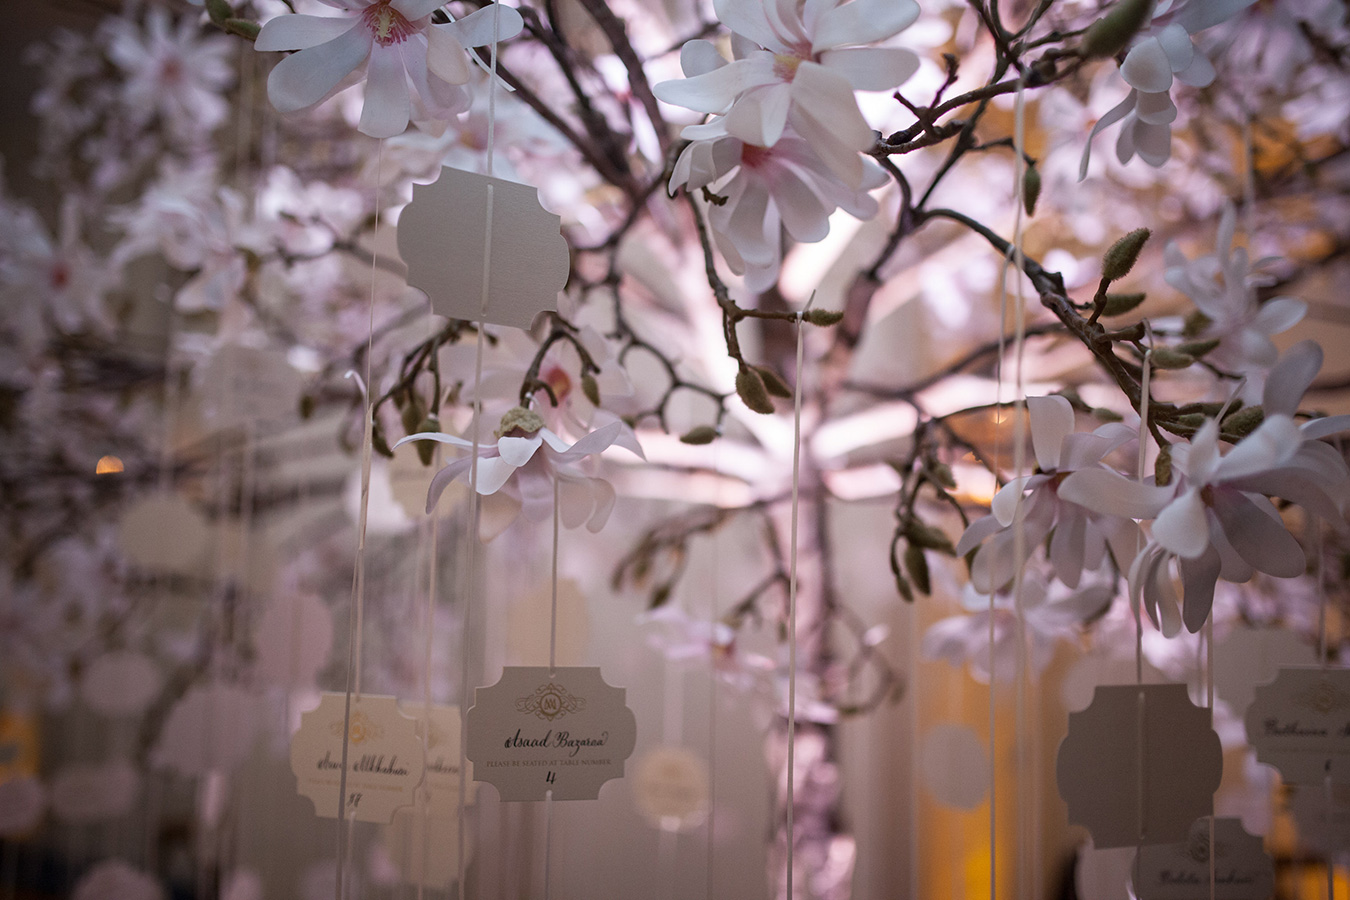 Magnolia tree used for table seating plan at wedding at Oriental Hotel in London